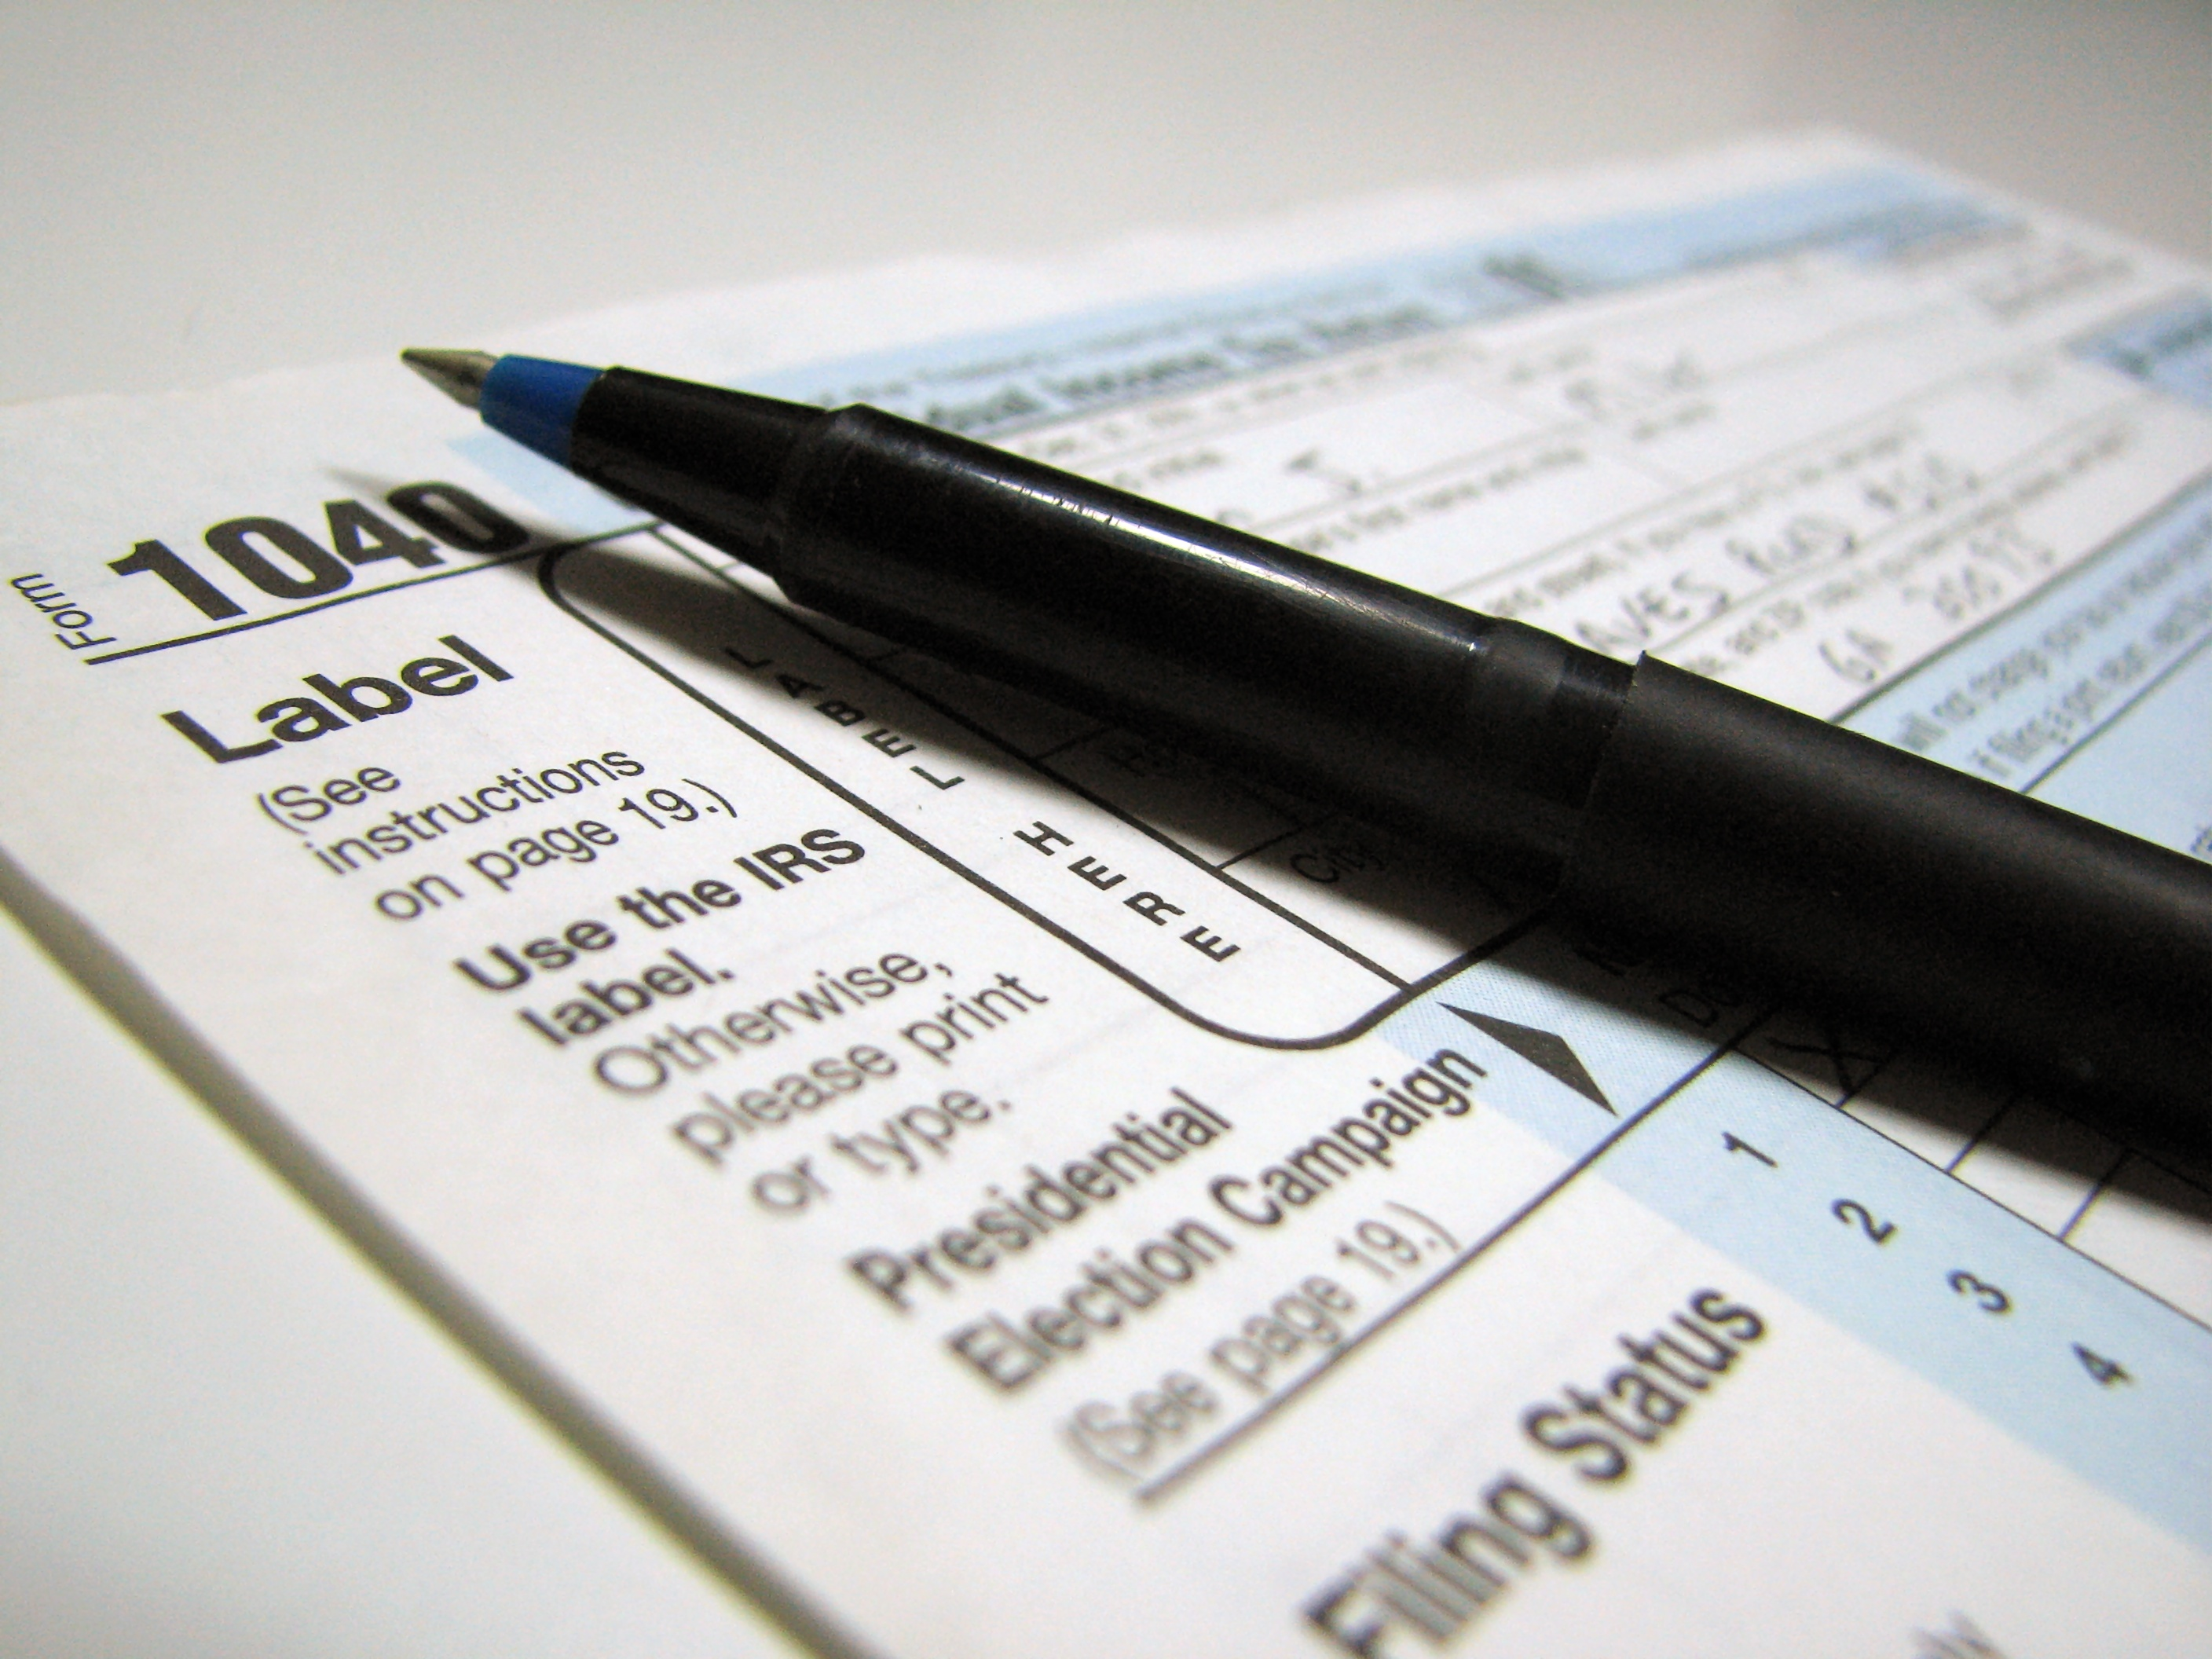 2481-closeup-of-a-1040-tax-form-and-a-pen-or